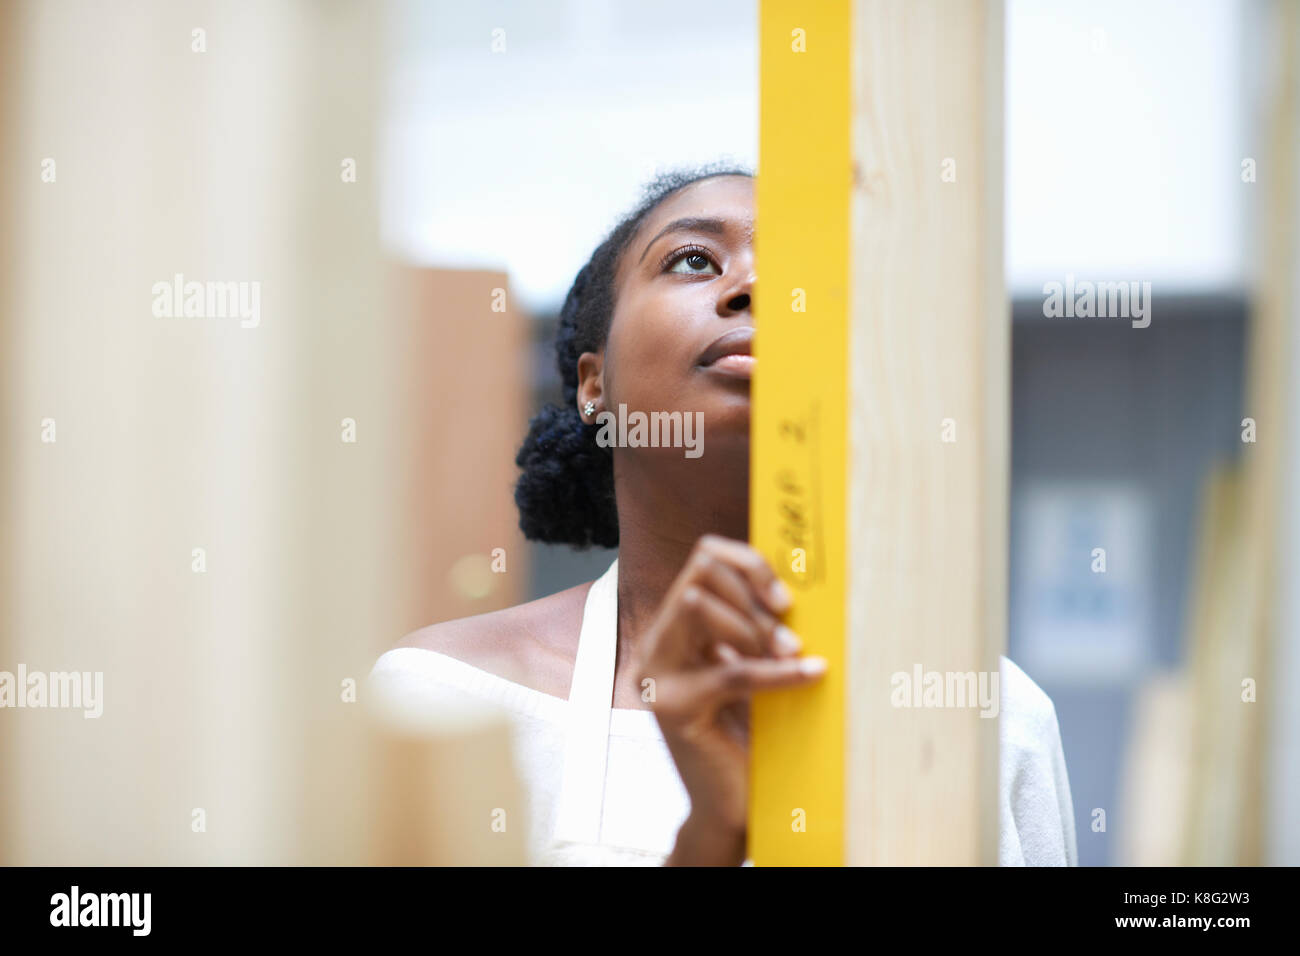 Student learning how to do building work - Stock Image